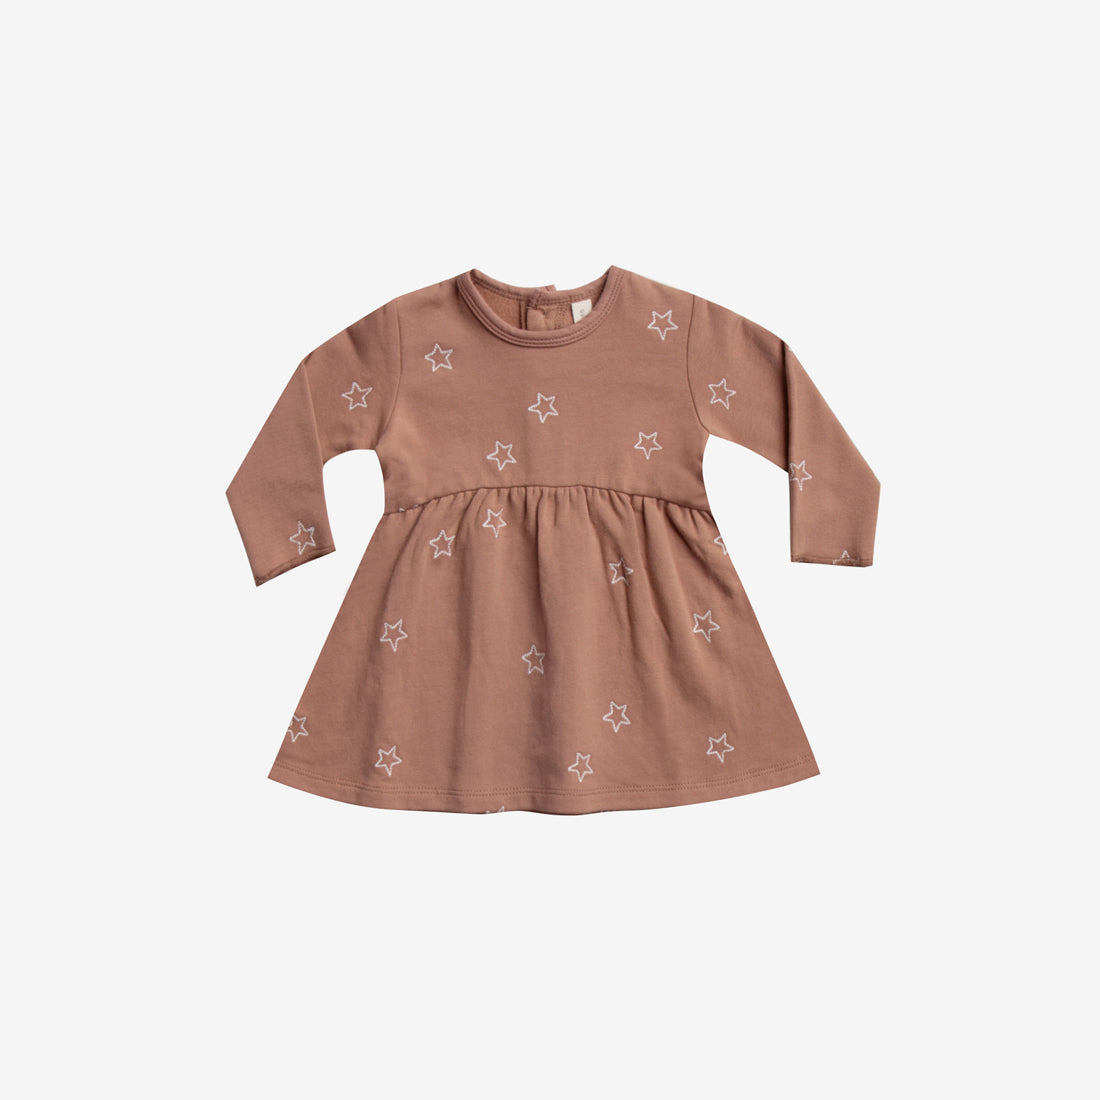 Embroidered Organic Fleece Dress - Clay Star